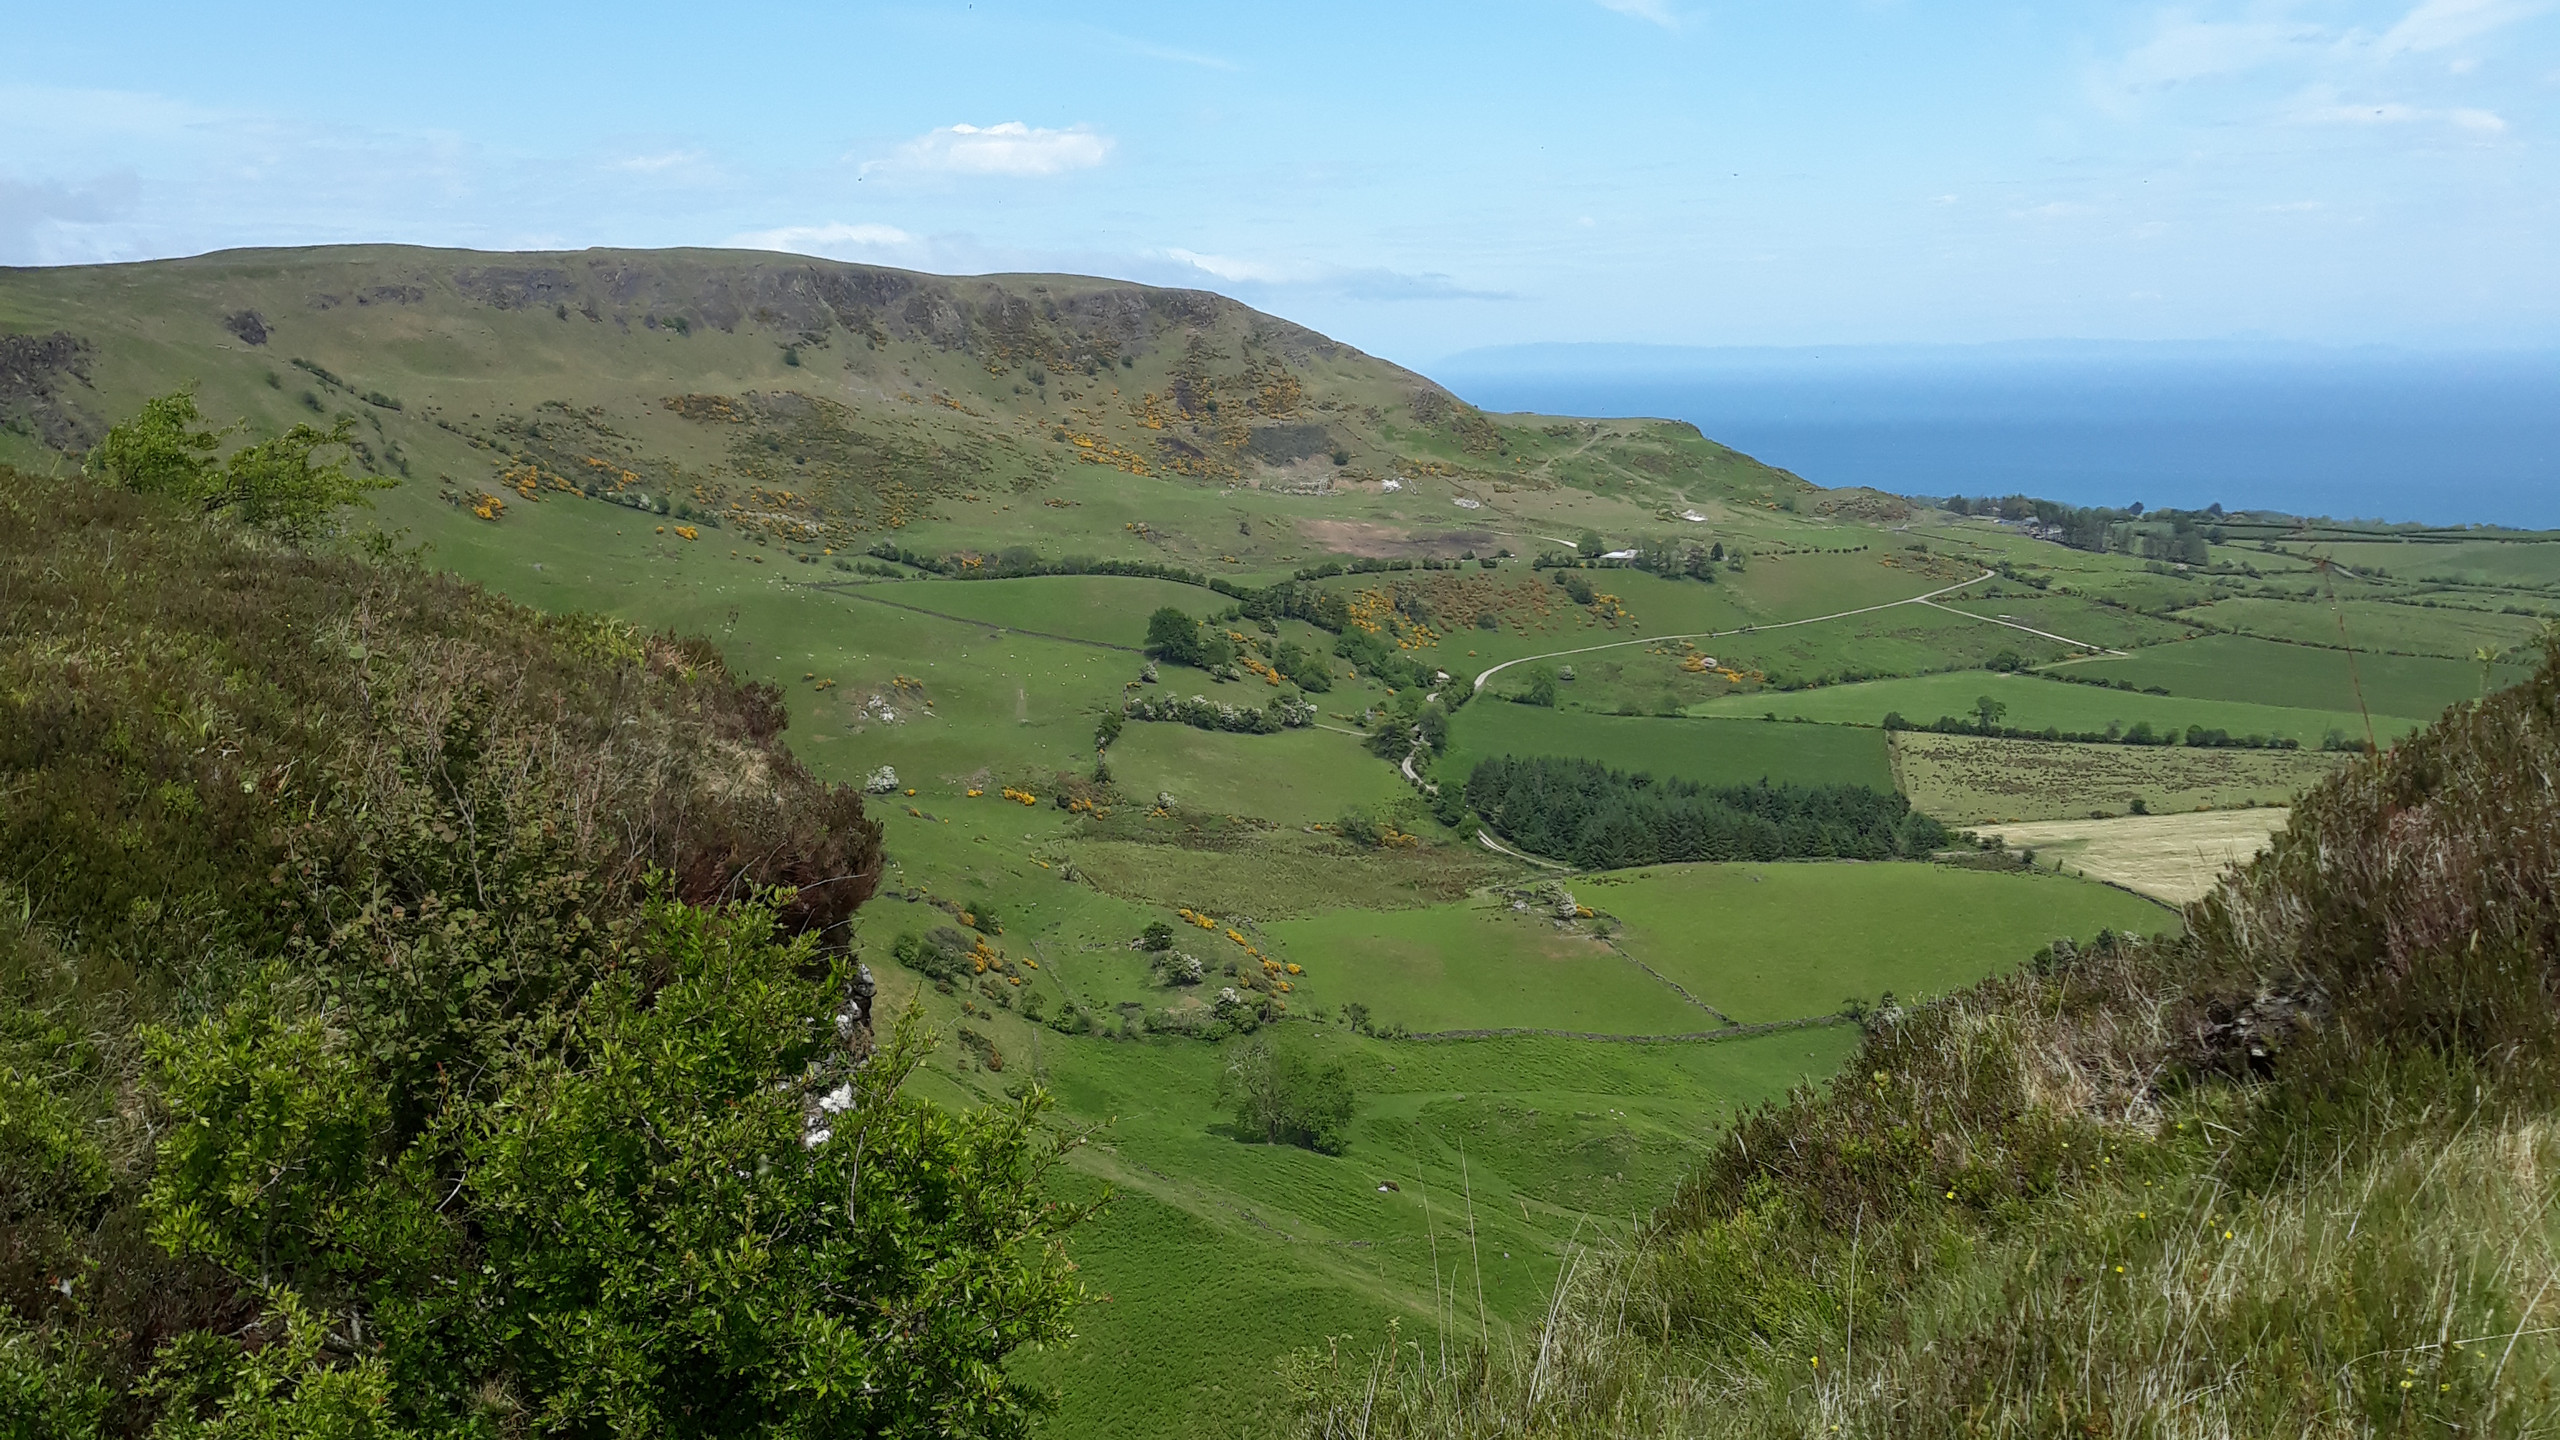 View from Sallagh Hill